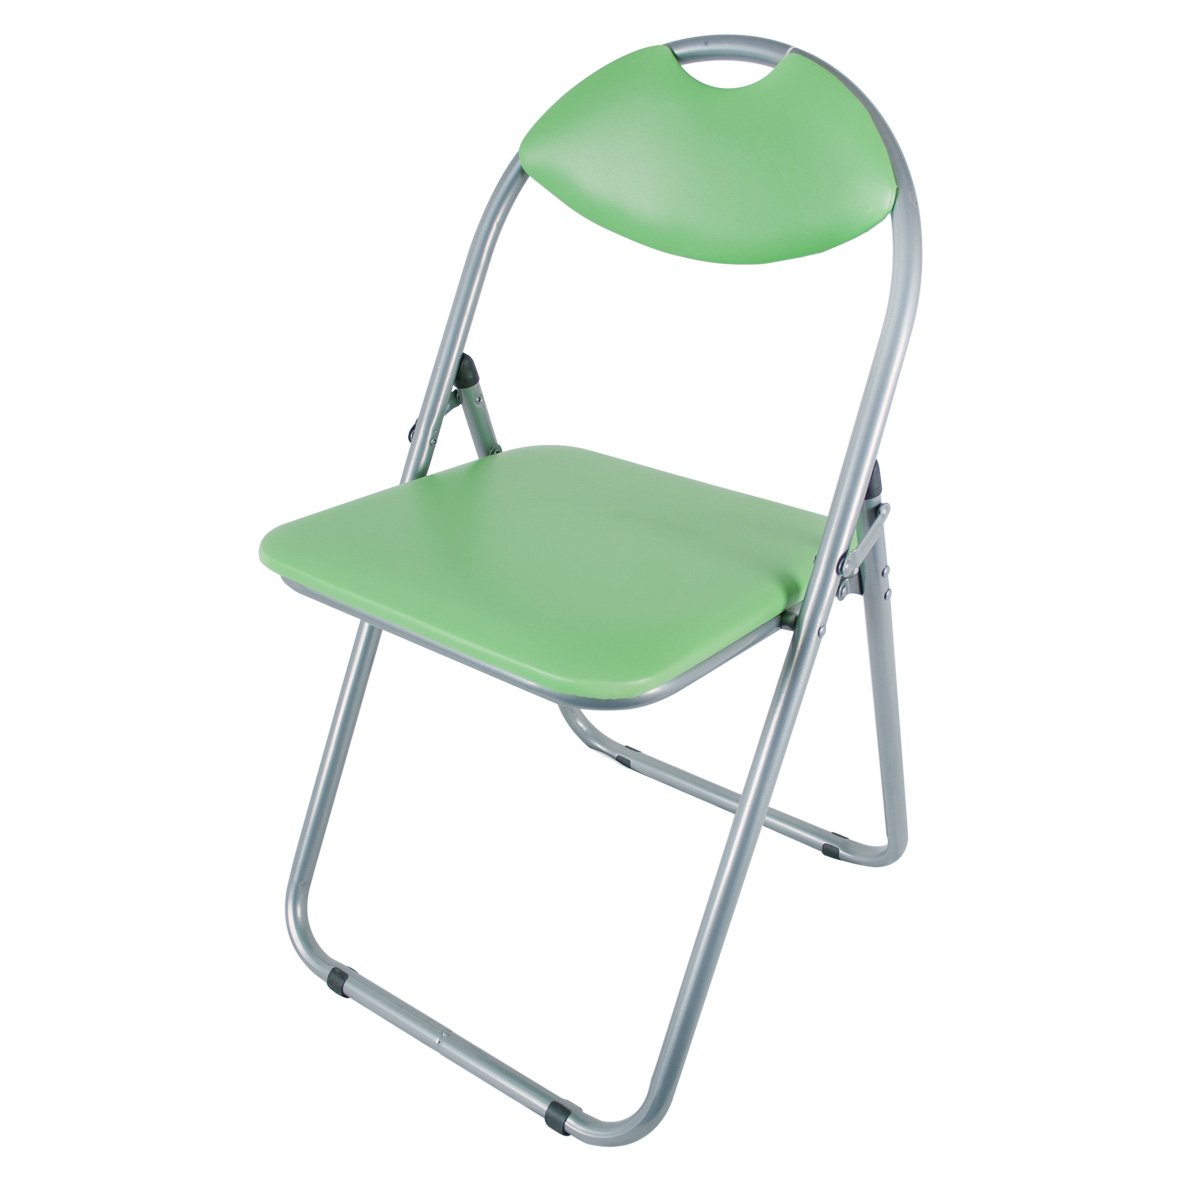 Benross Paris Faux Leather and Steel Folding Dining Chair, 43.5 x 46 x 79.5 cm, Green Benross Group 69210